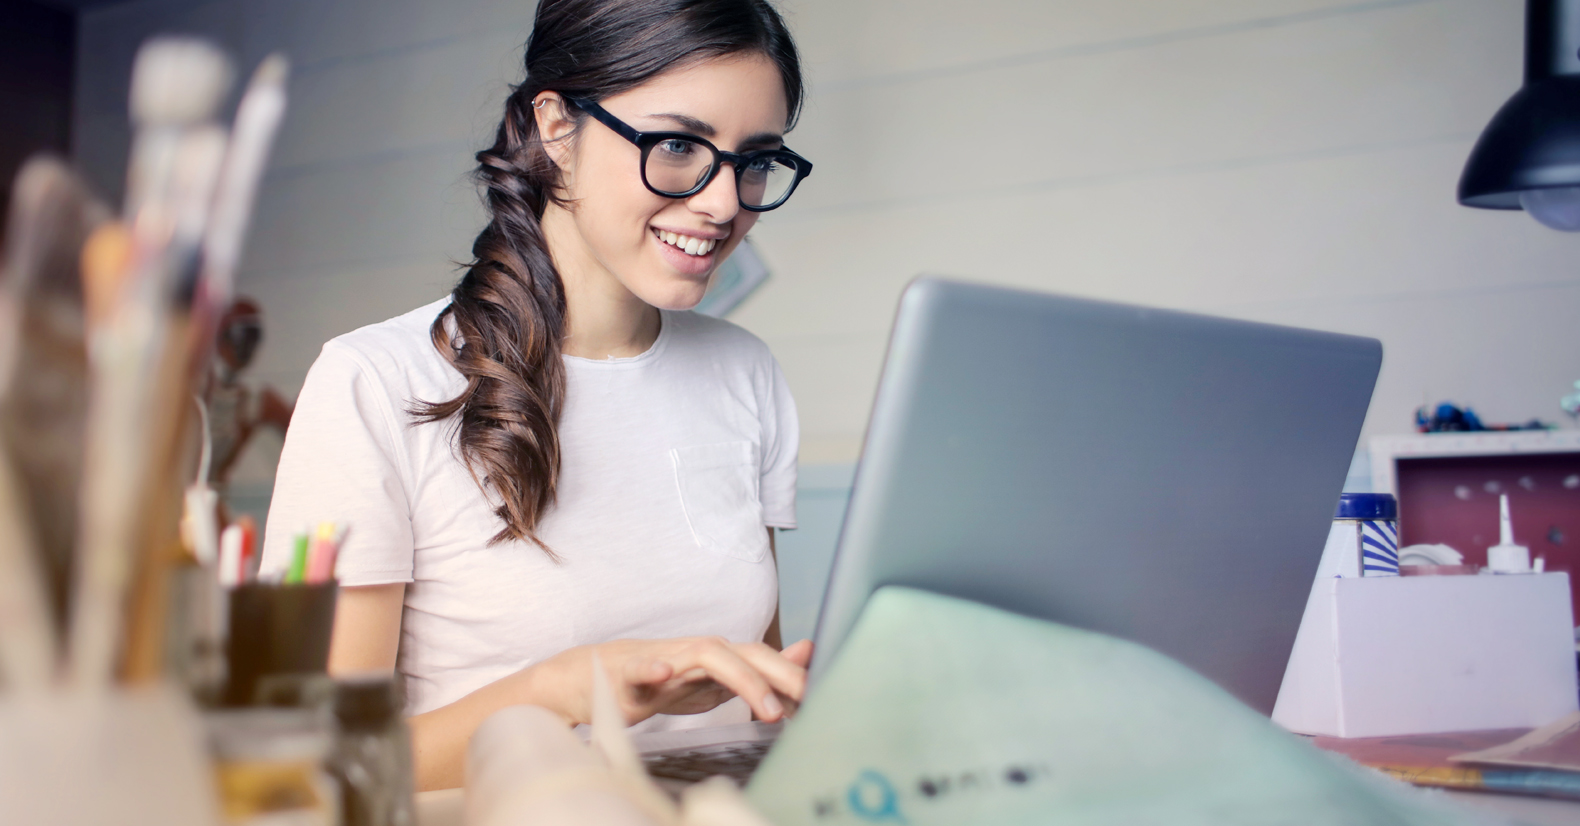 woman in glasses using a computer